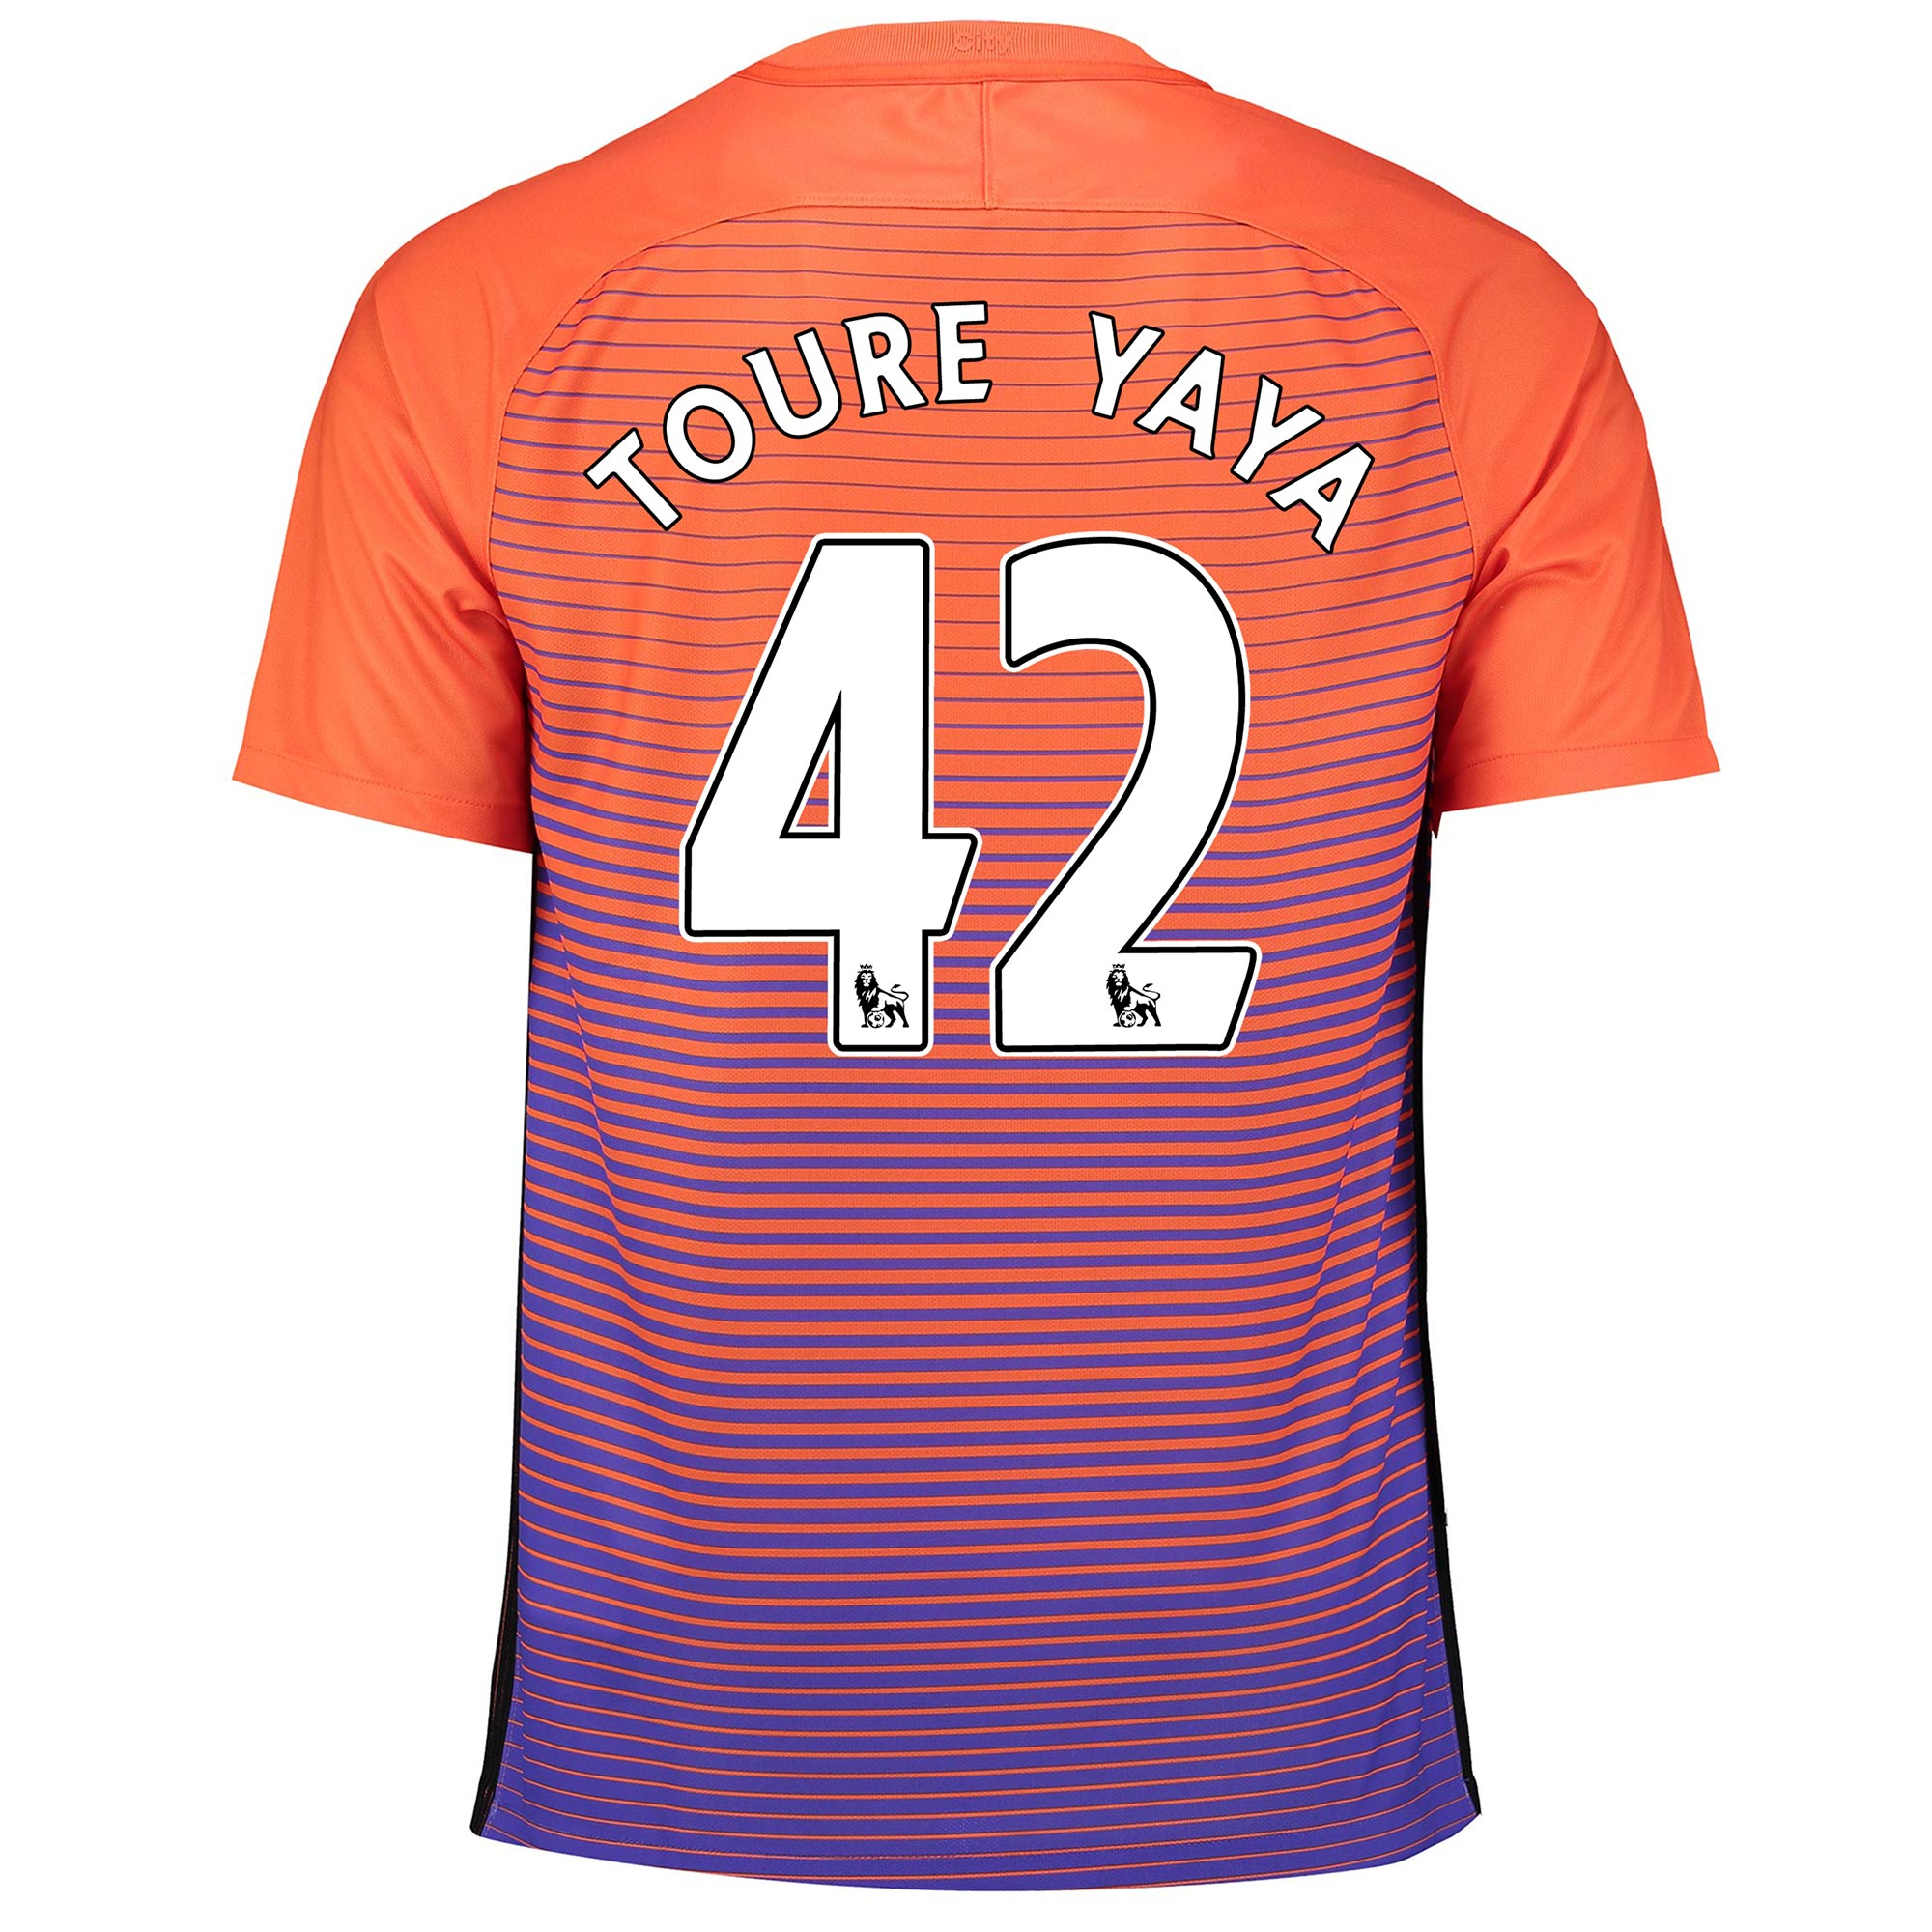 Manchester City Third Stadium Shirt 2016-17 with Toure Yaya 42 printin